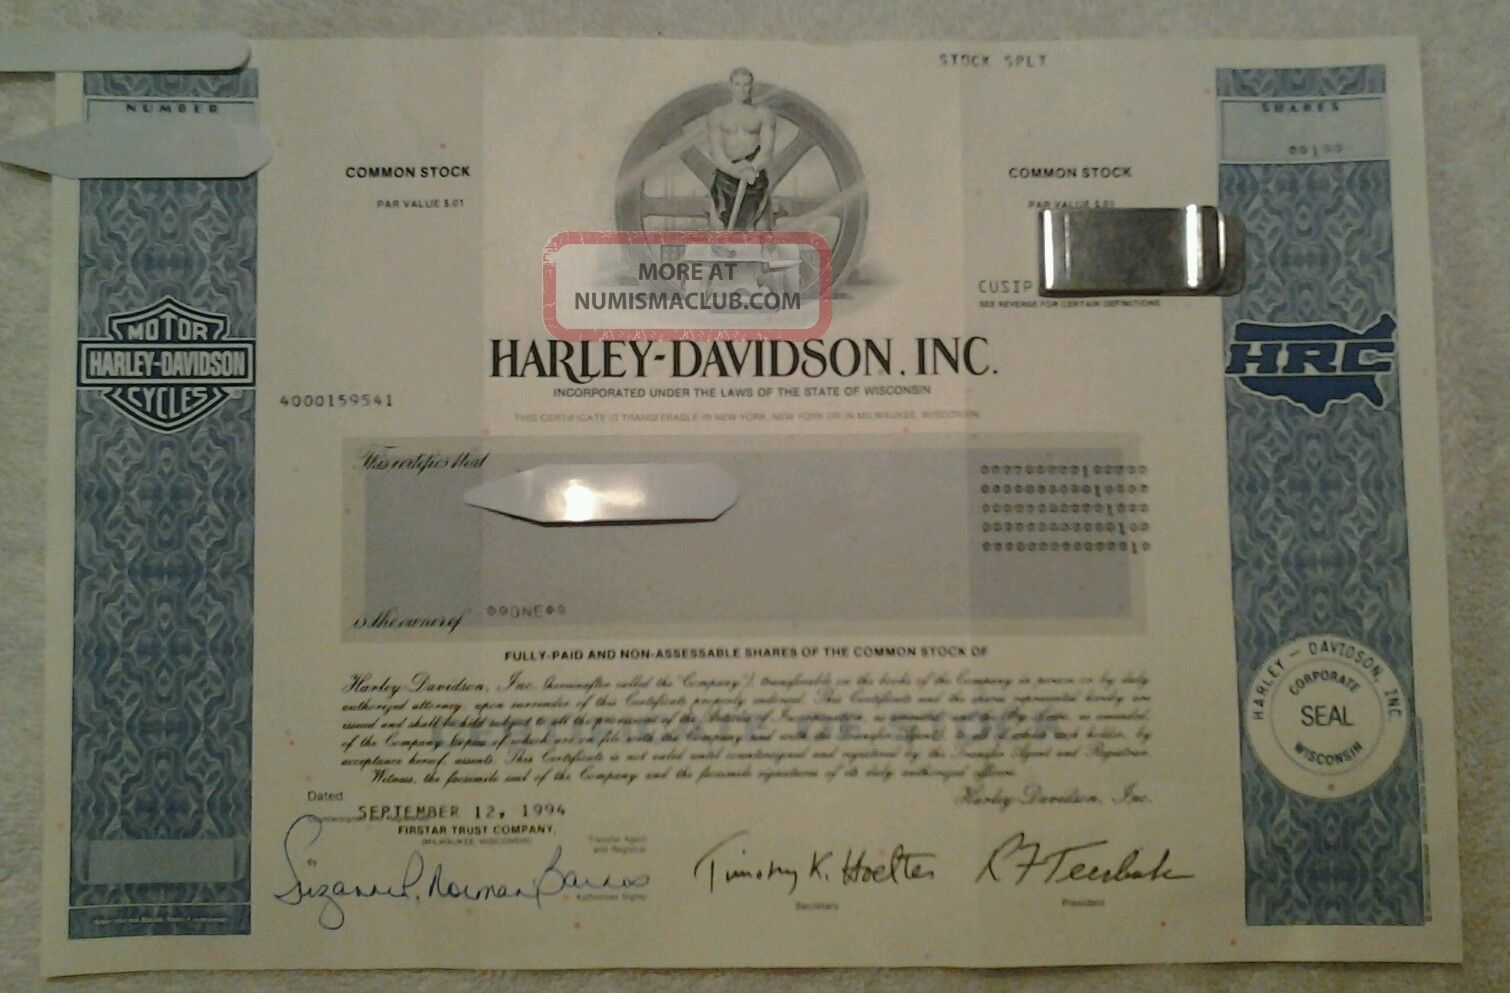 Harley Davidson Sept 1994 Common Stock Certificate - Collectors Item Stocks & Bonds, Scripophily photo